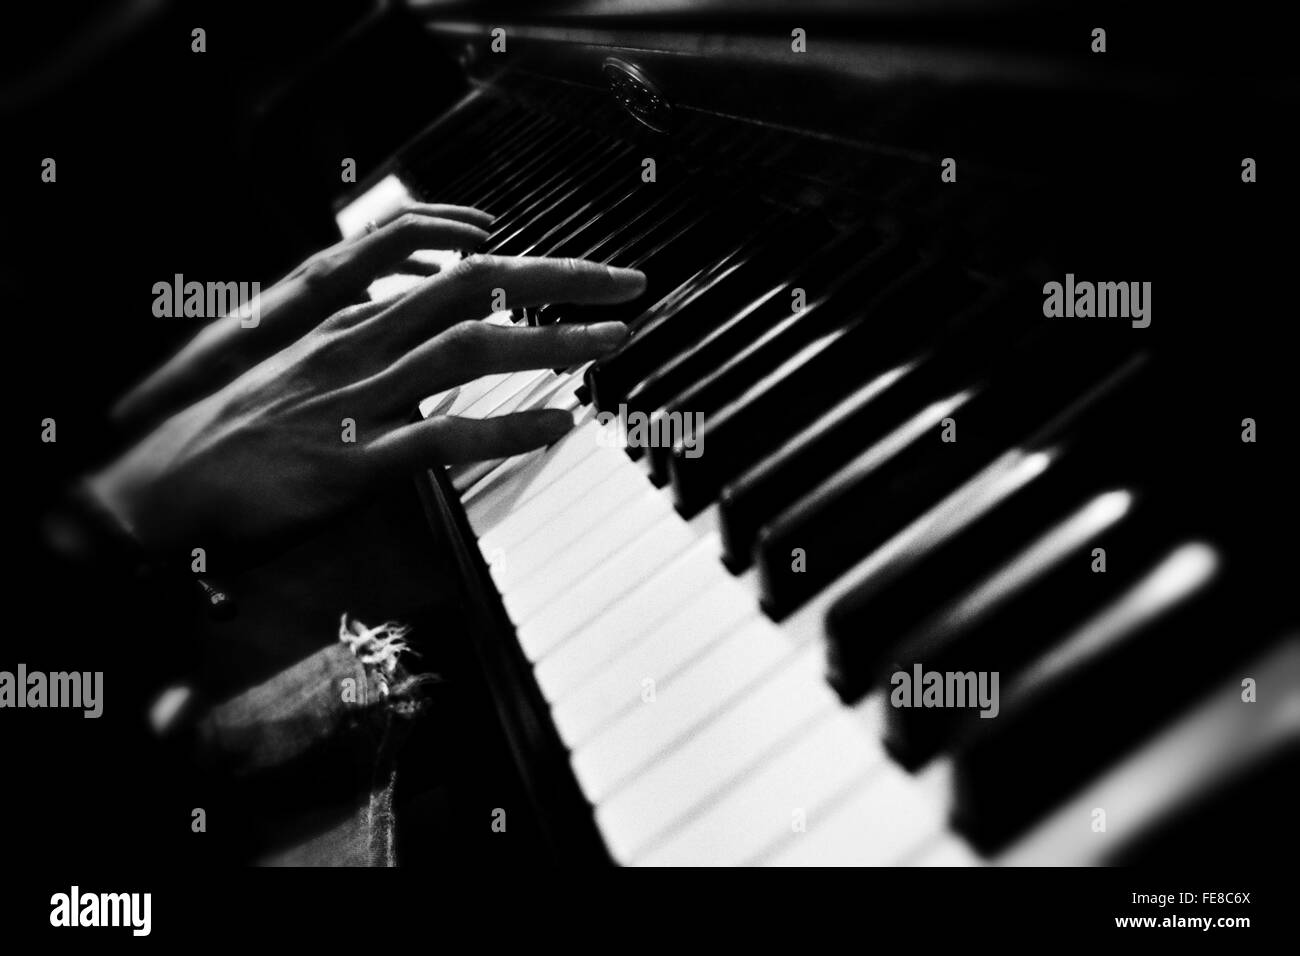 Close-Up Of Person Hands Playing Piano - Stock Image